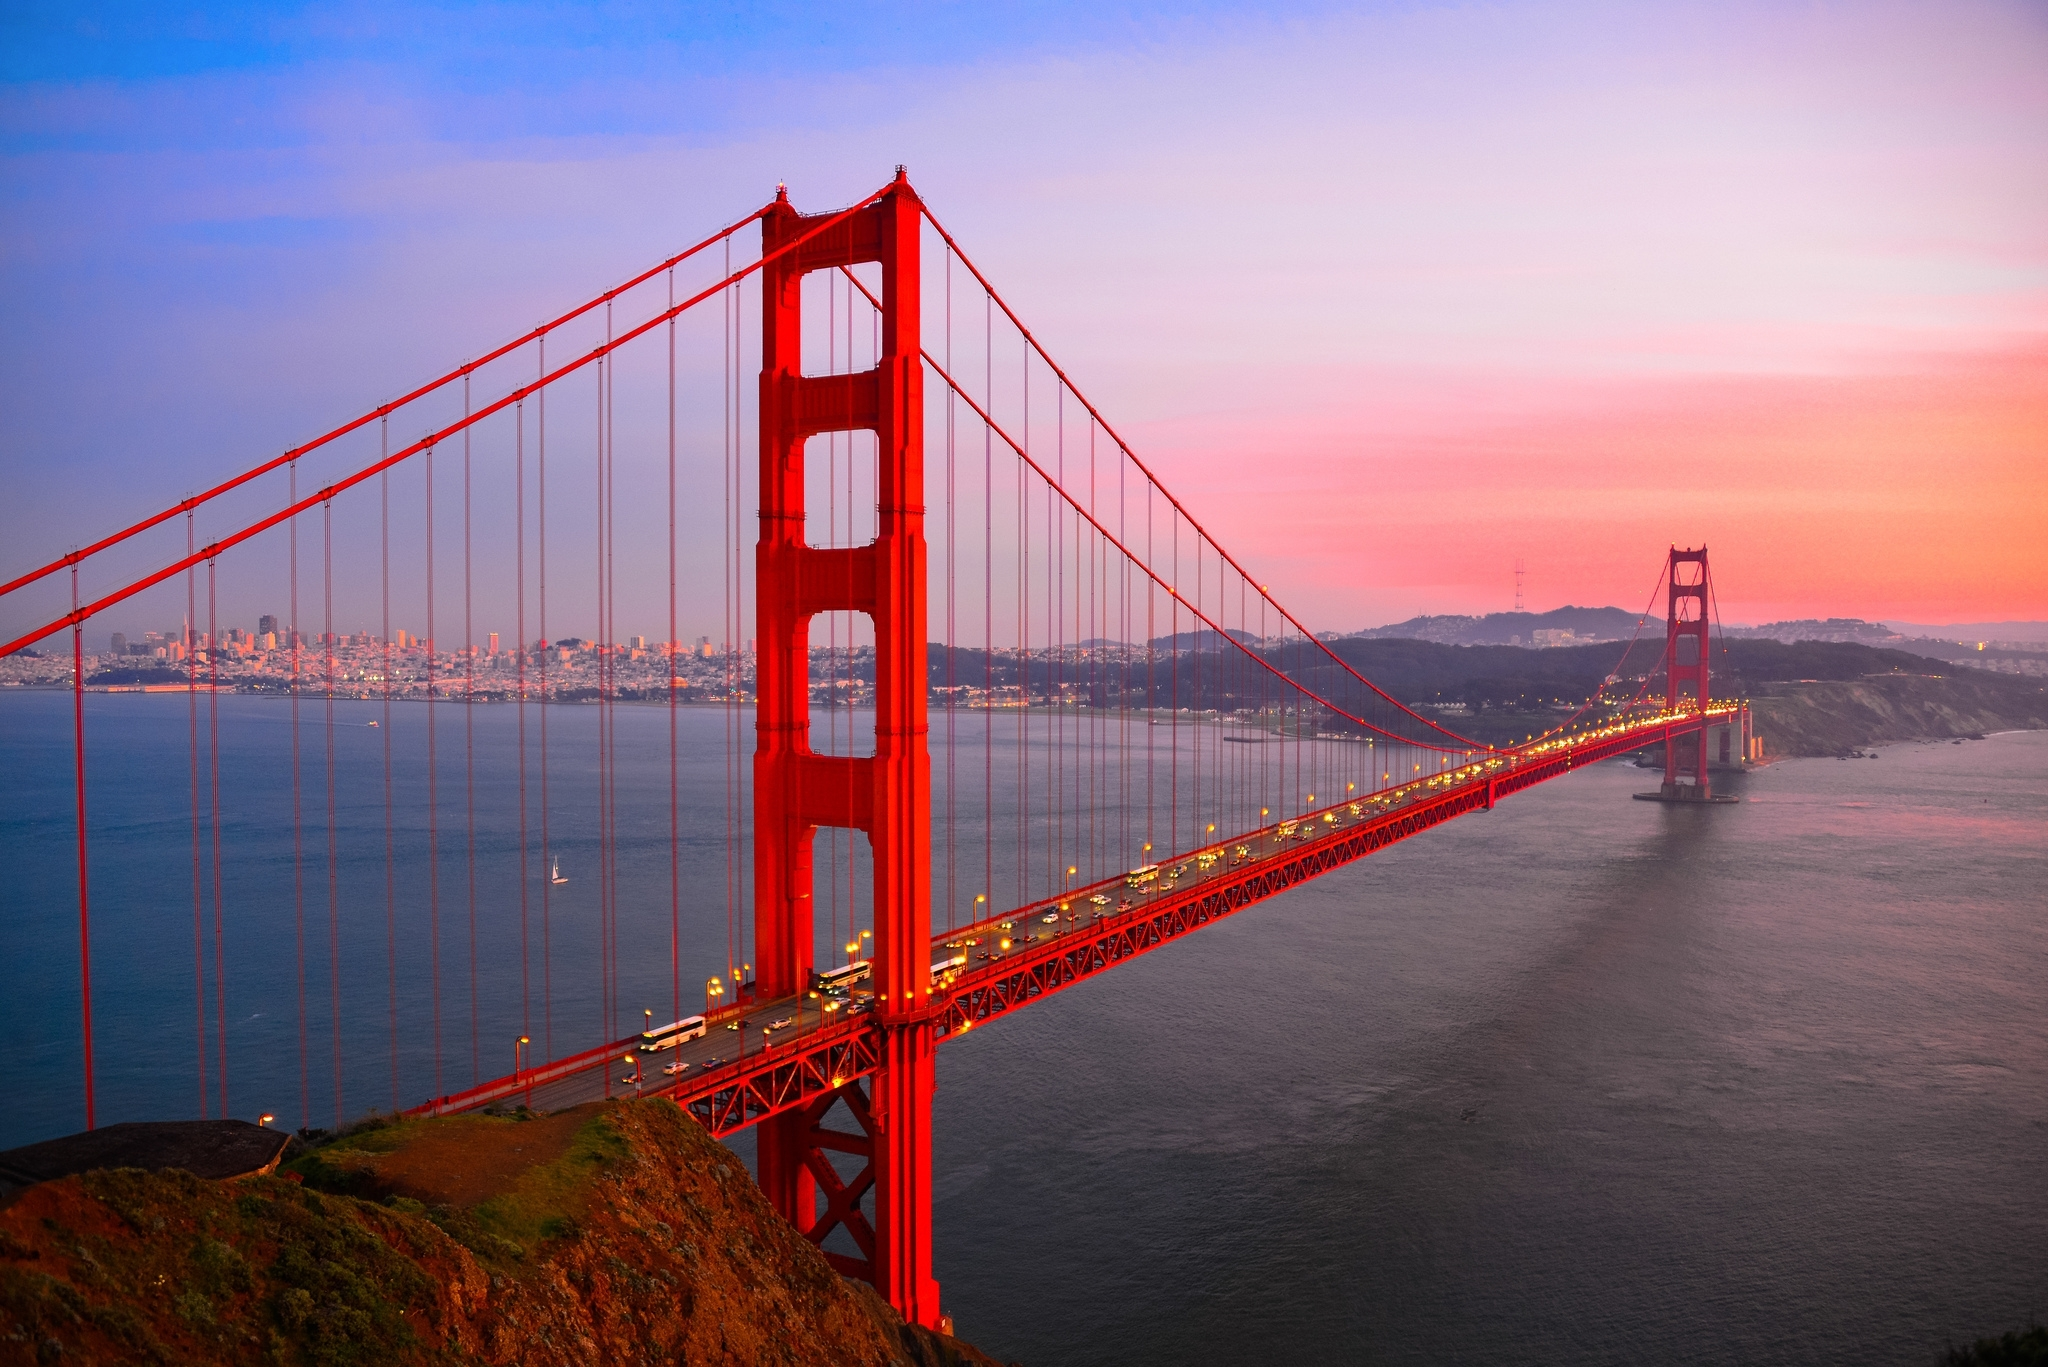 181 golden gate hd wallpapers | background images - wallpaper abyss